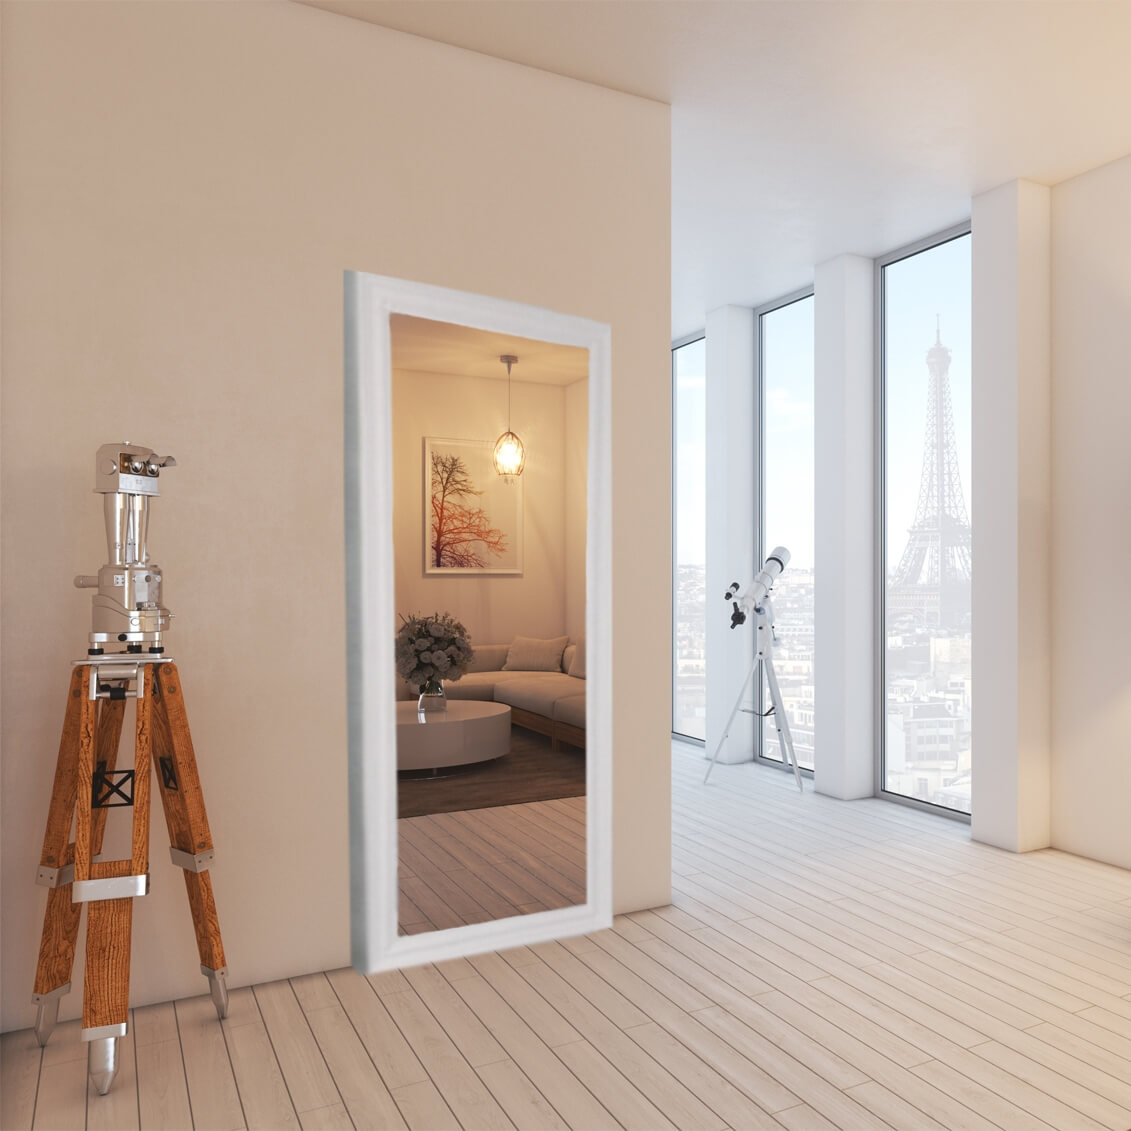 sliding doors outside the wall with mirror